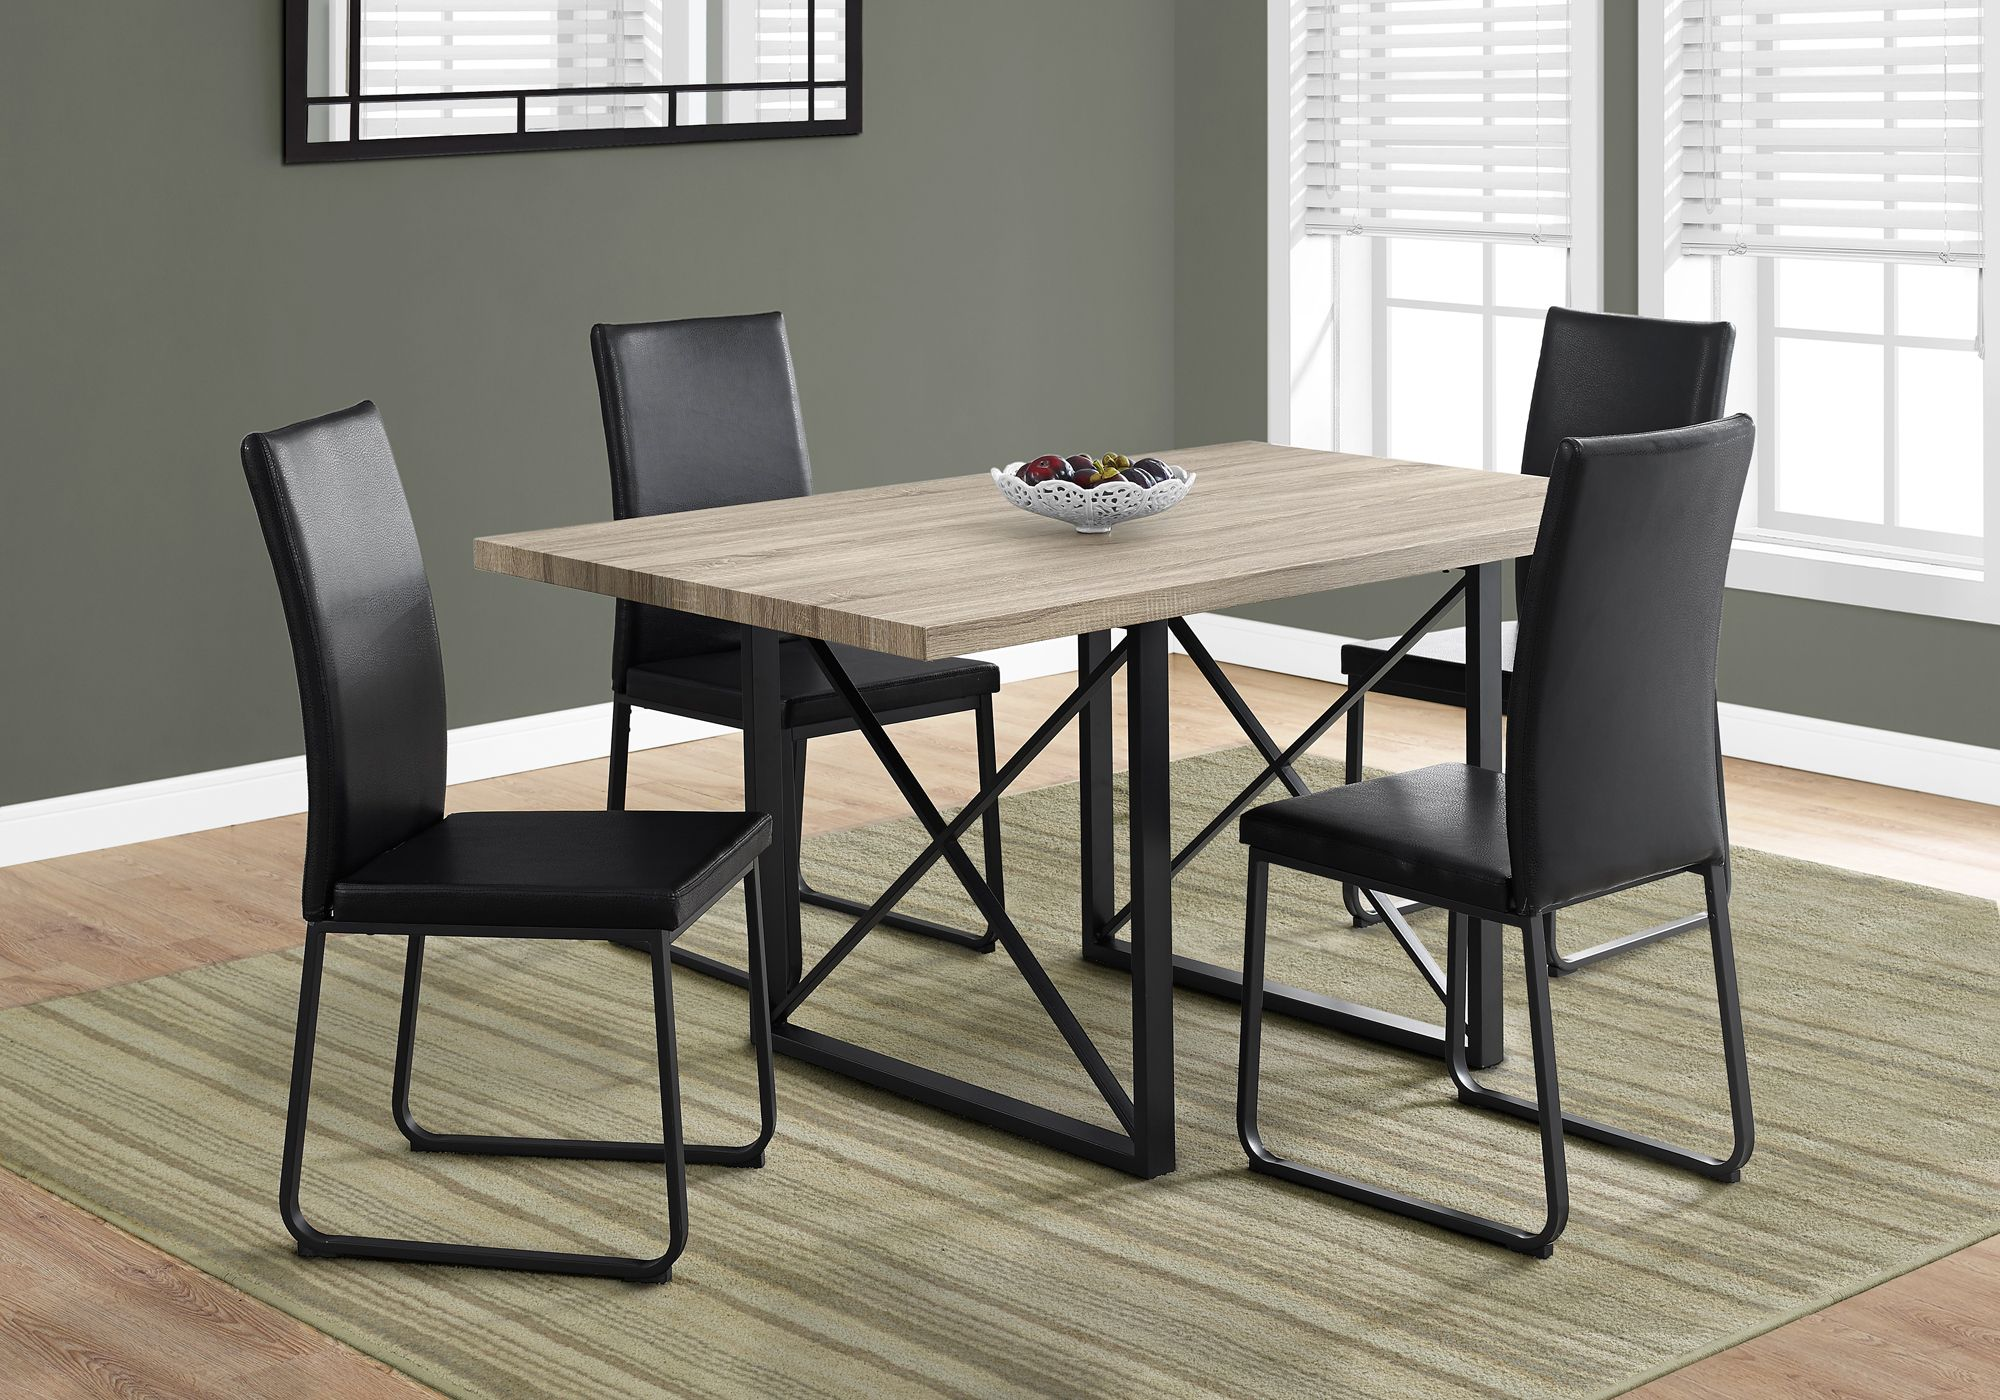 I 1100 dining table only 36 x 60 dark taupe black - Table de cuisine noir ...